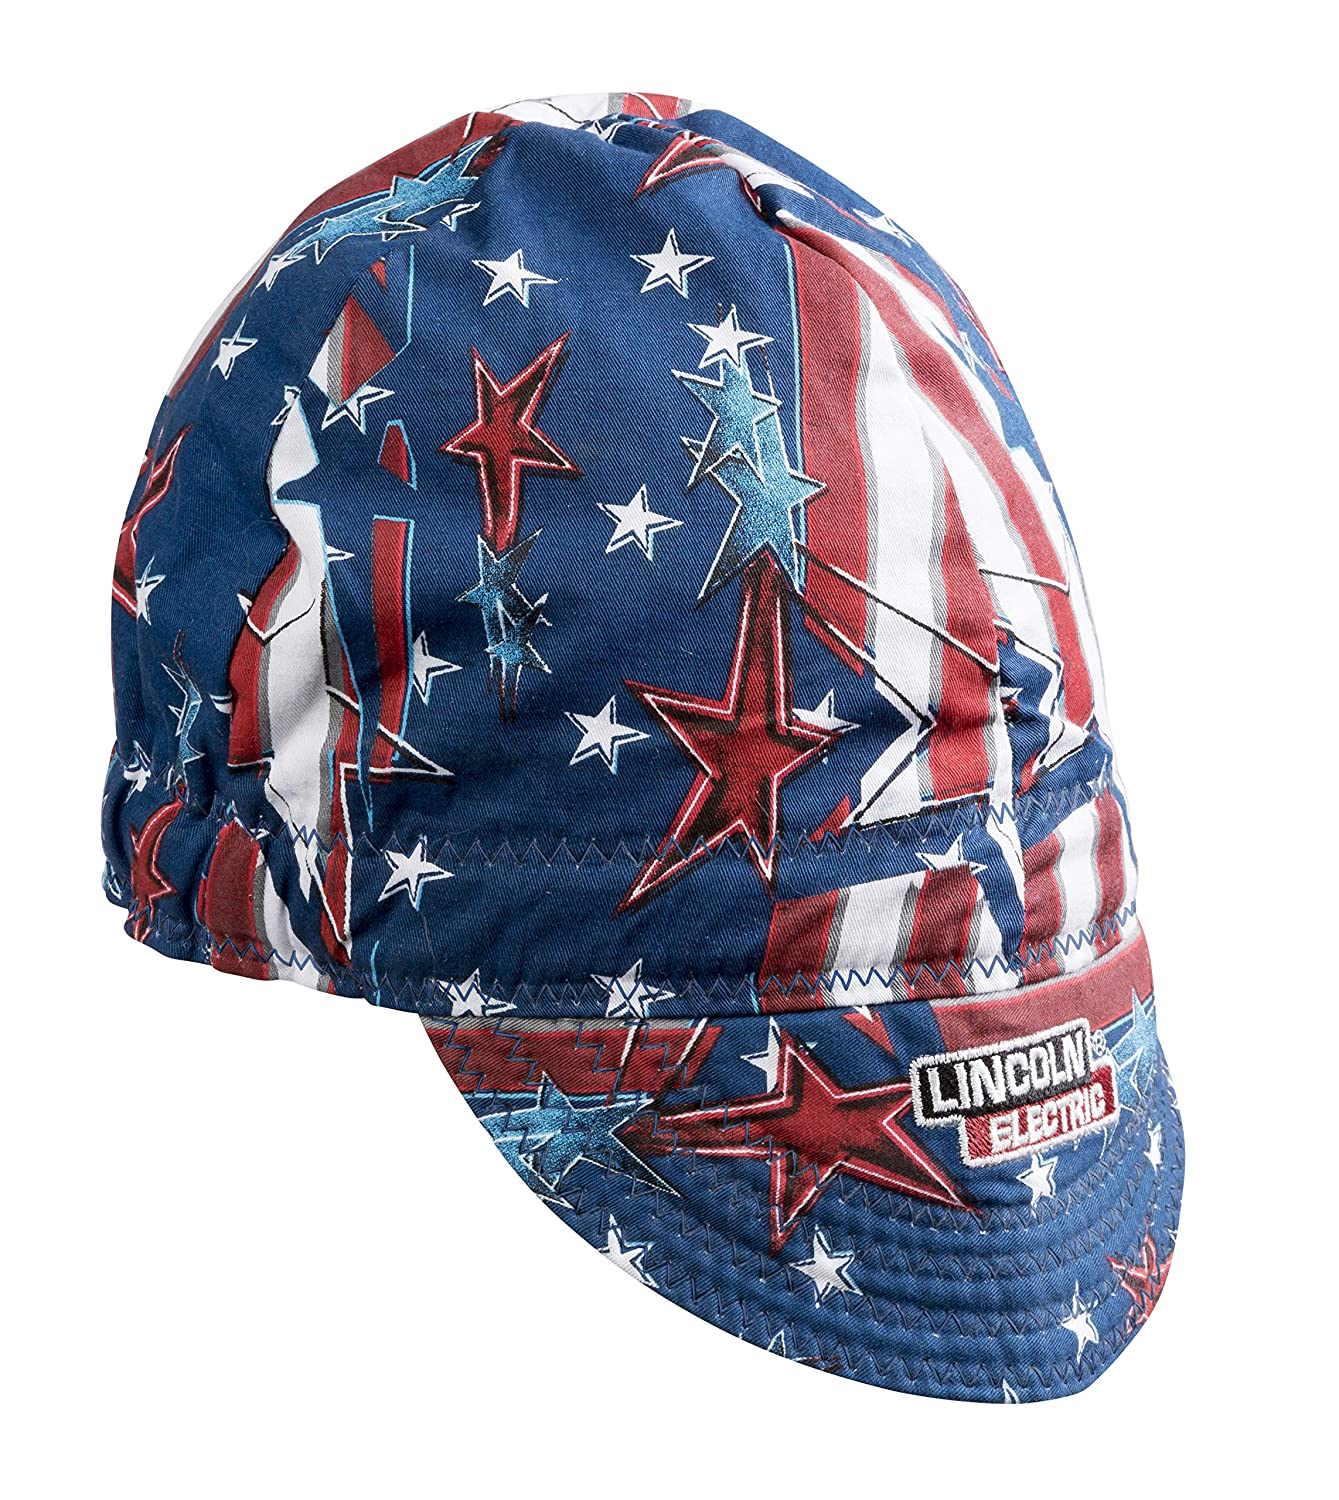 Lincoln Electric Welding Cap| Mesh Inside Liner | All American Print |K3203 ALL